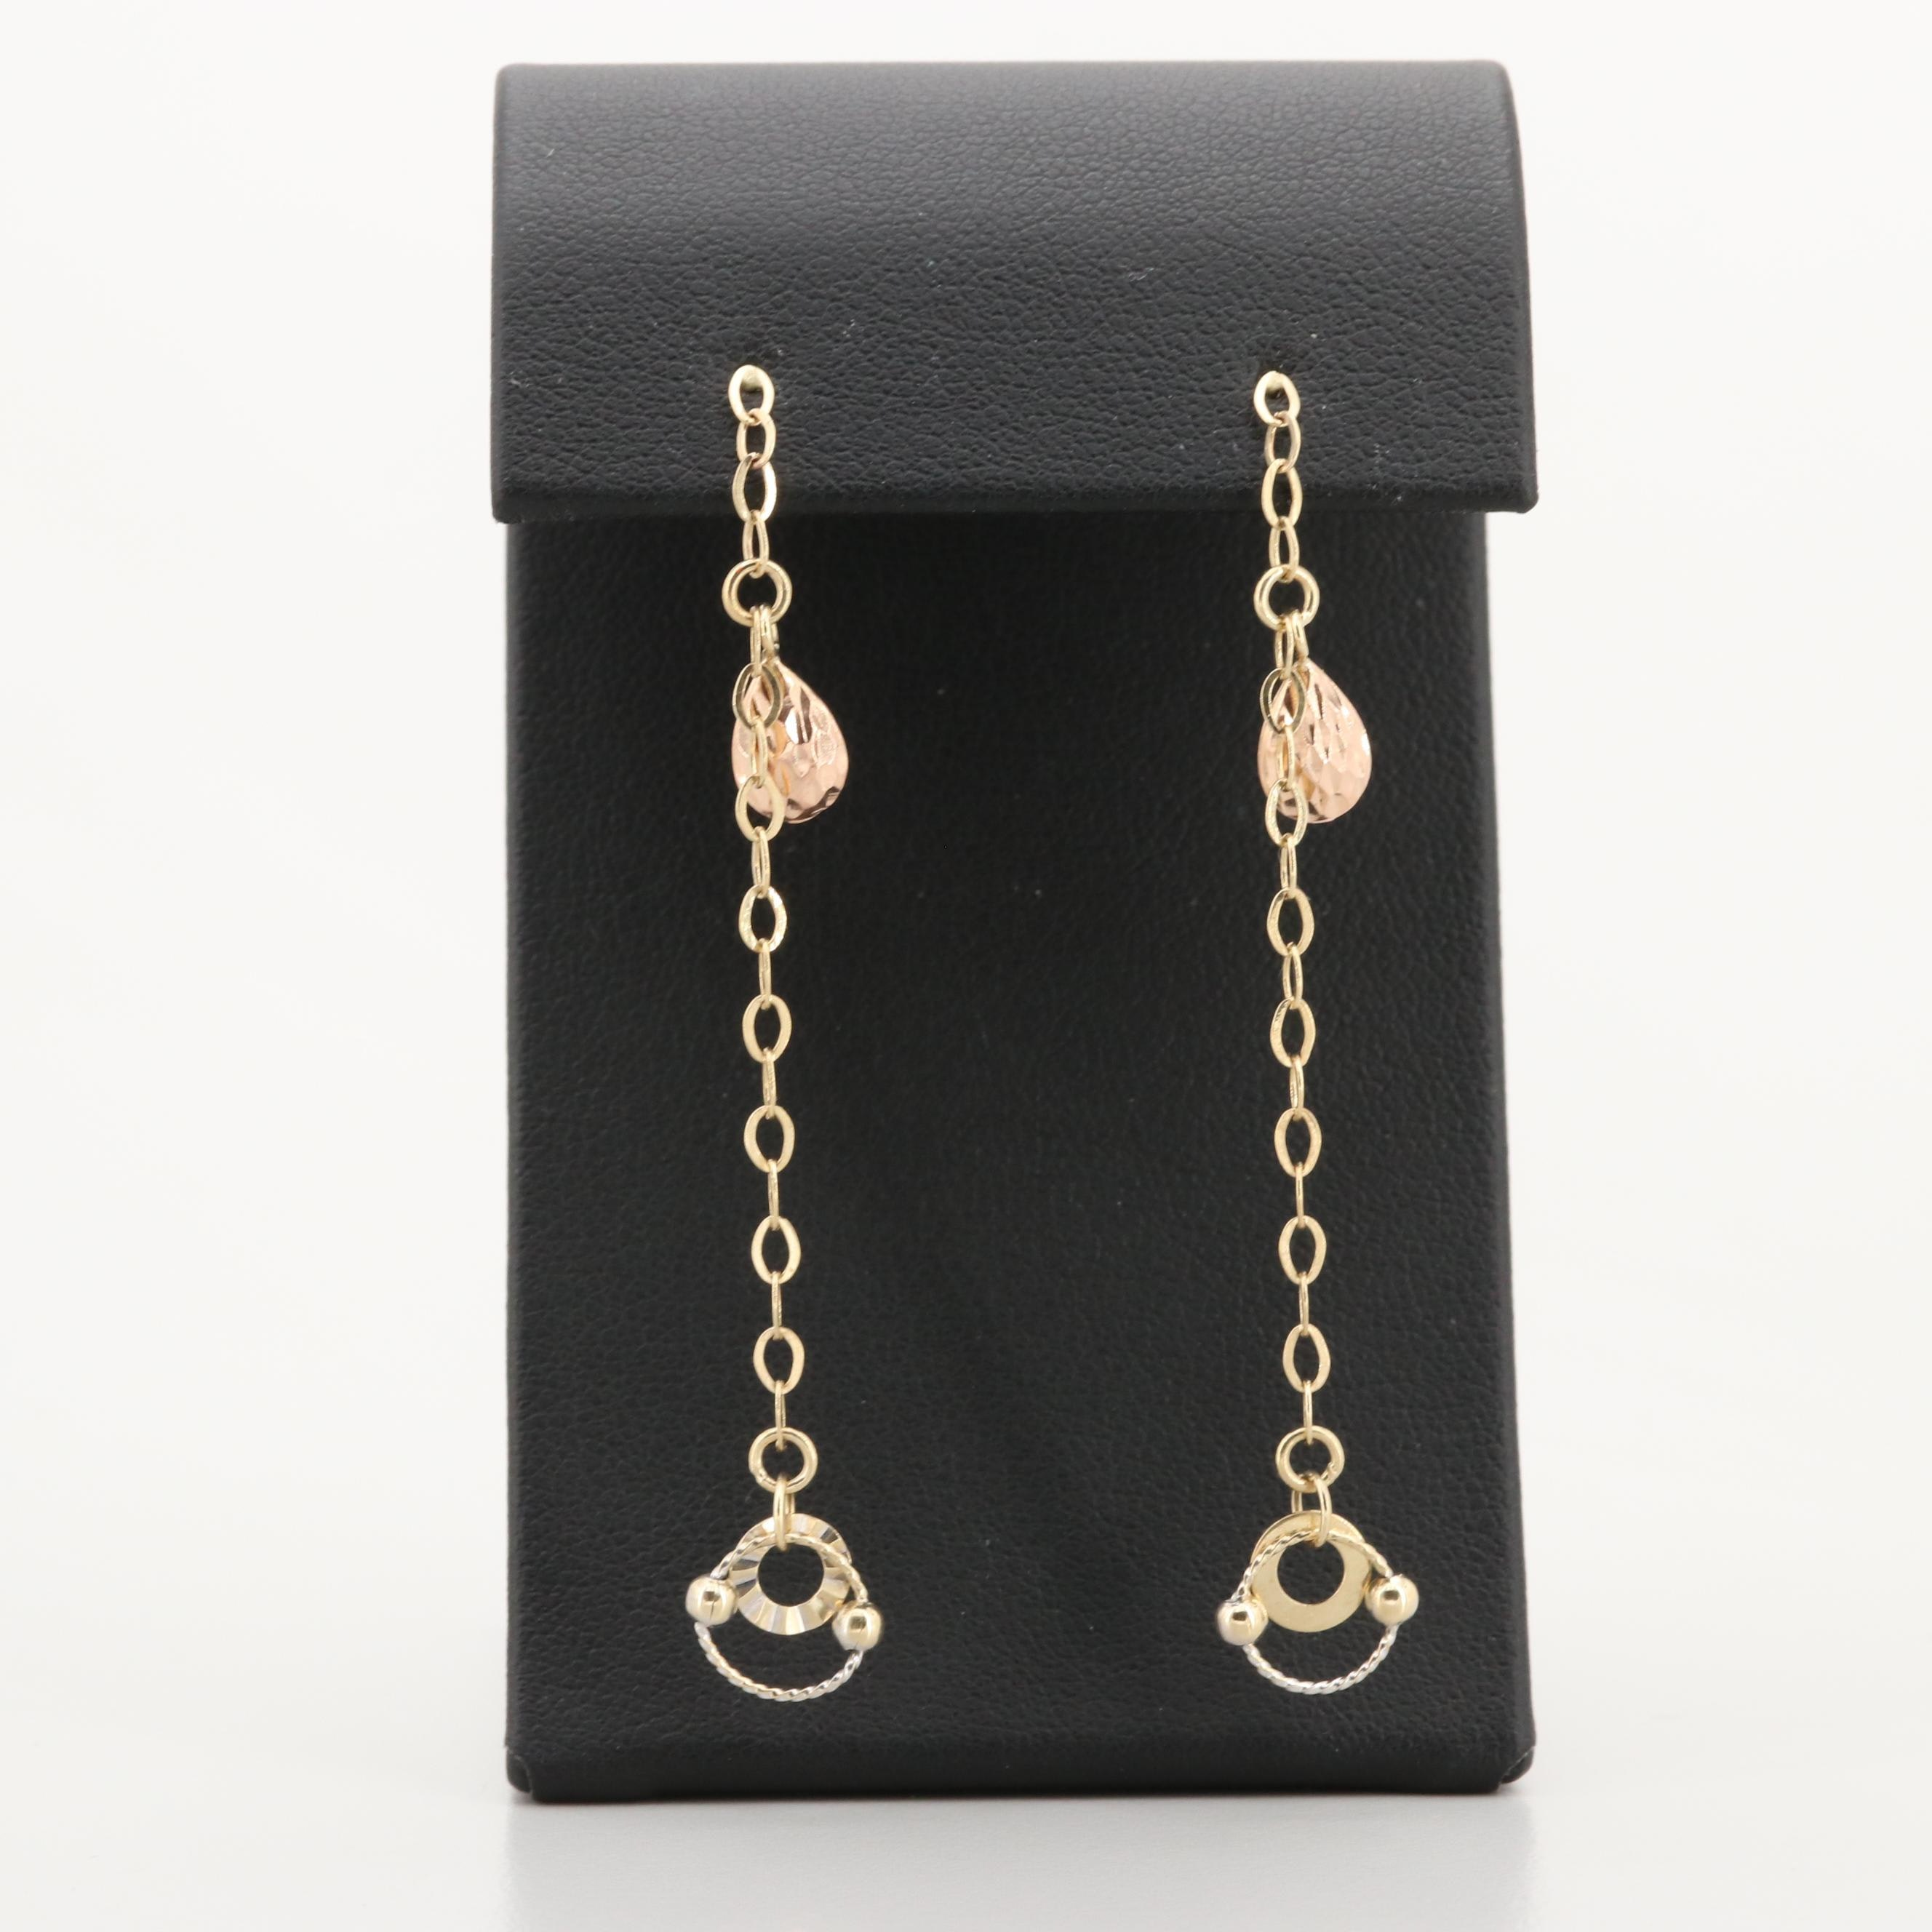 14K Yellow, White and Rose Gold Earrings